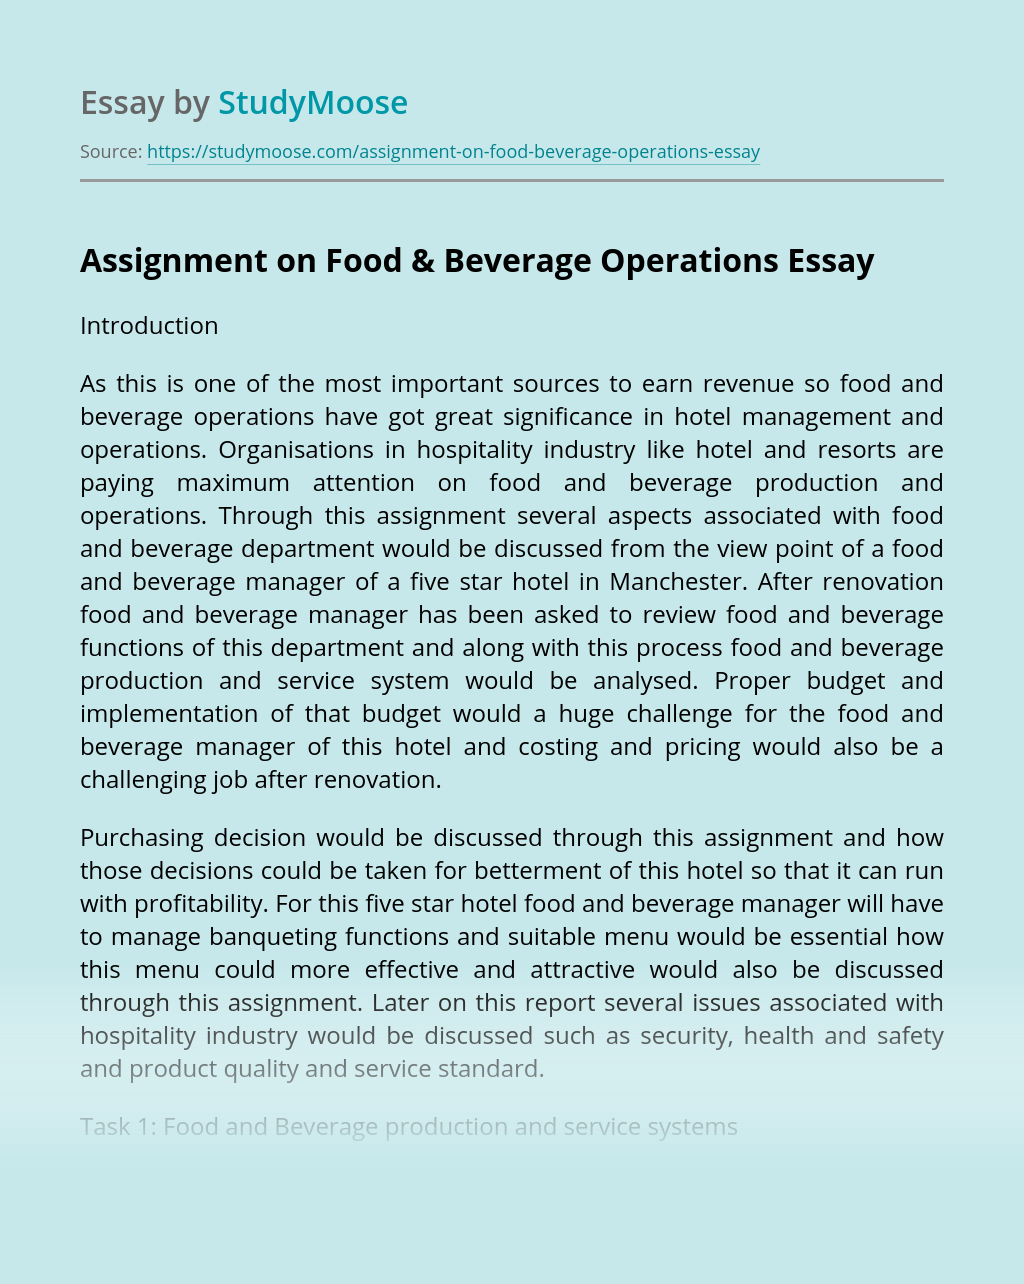 Assignment on Food & Beverage Operations